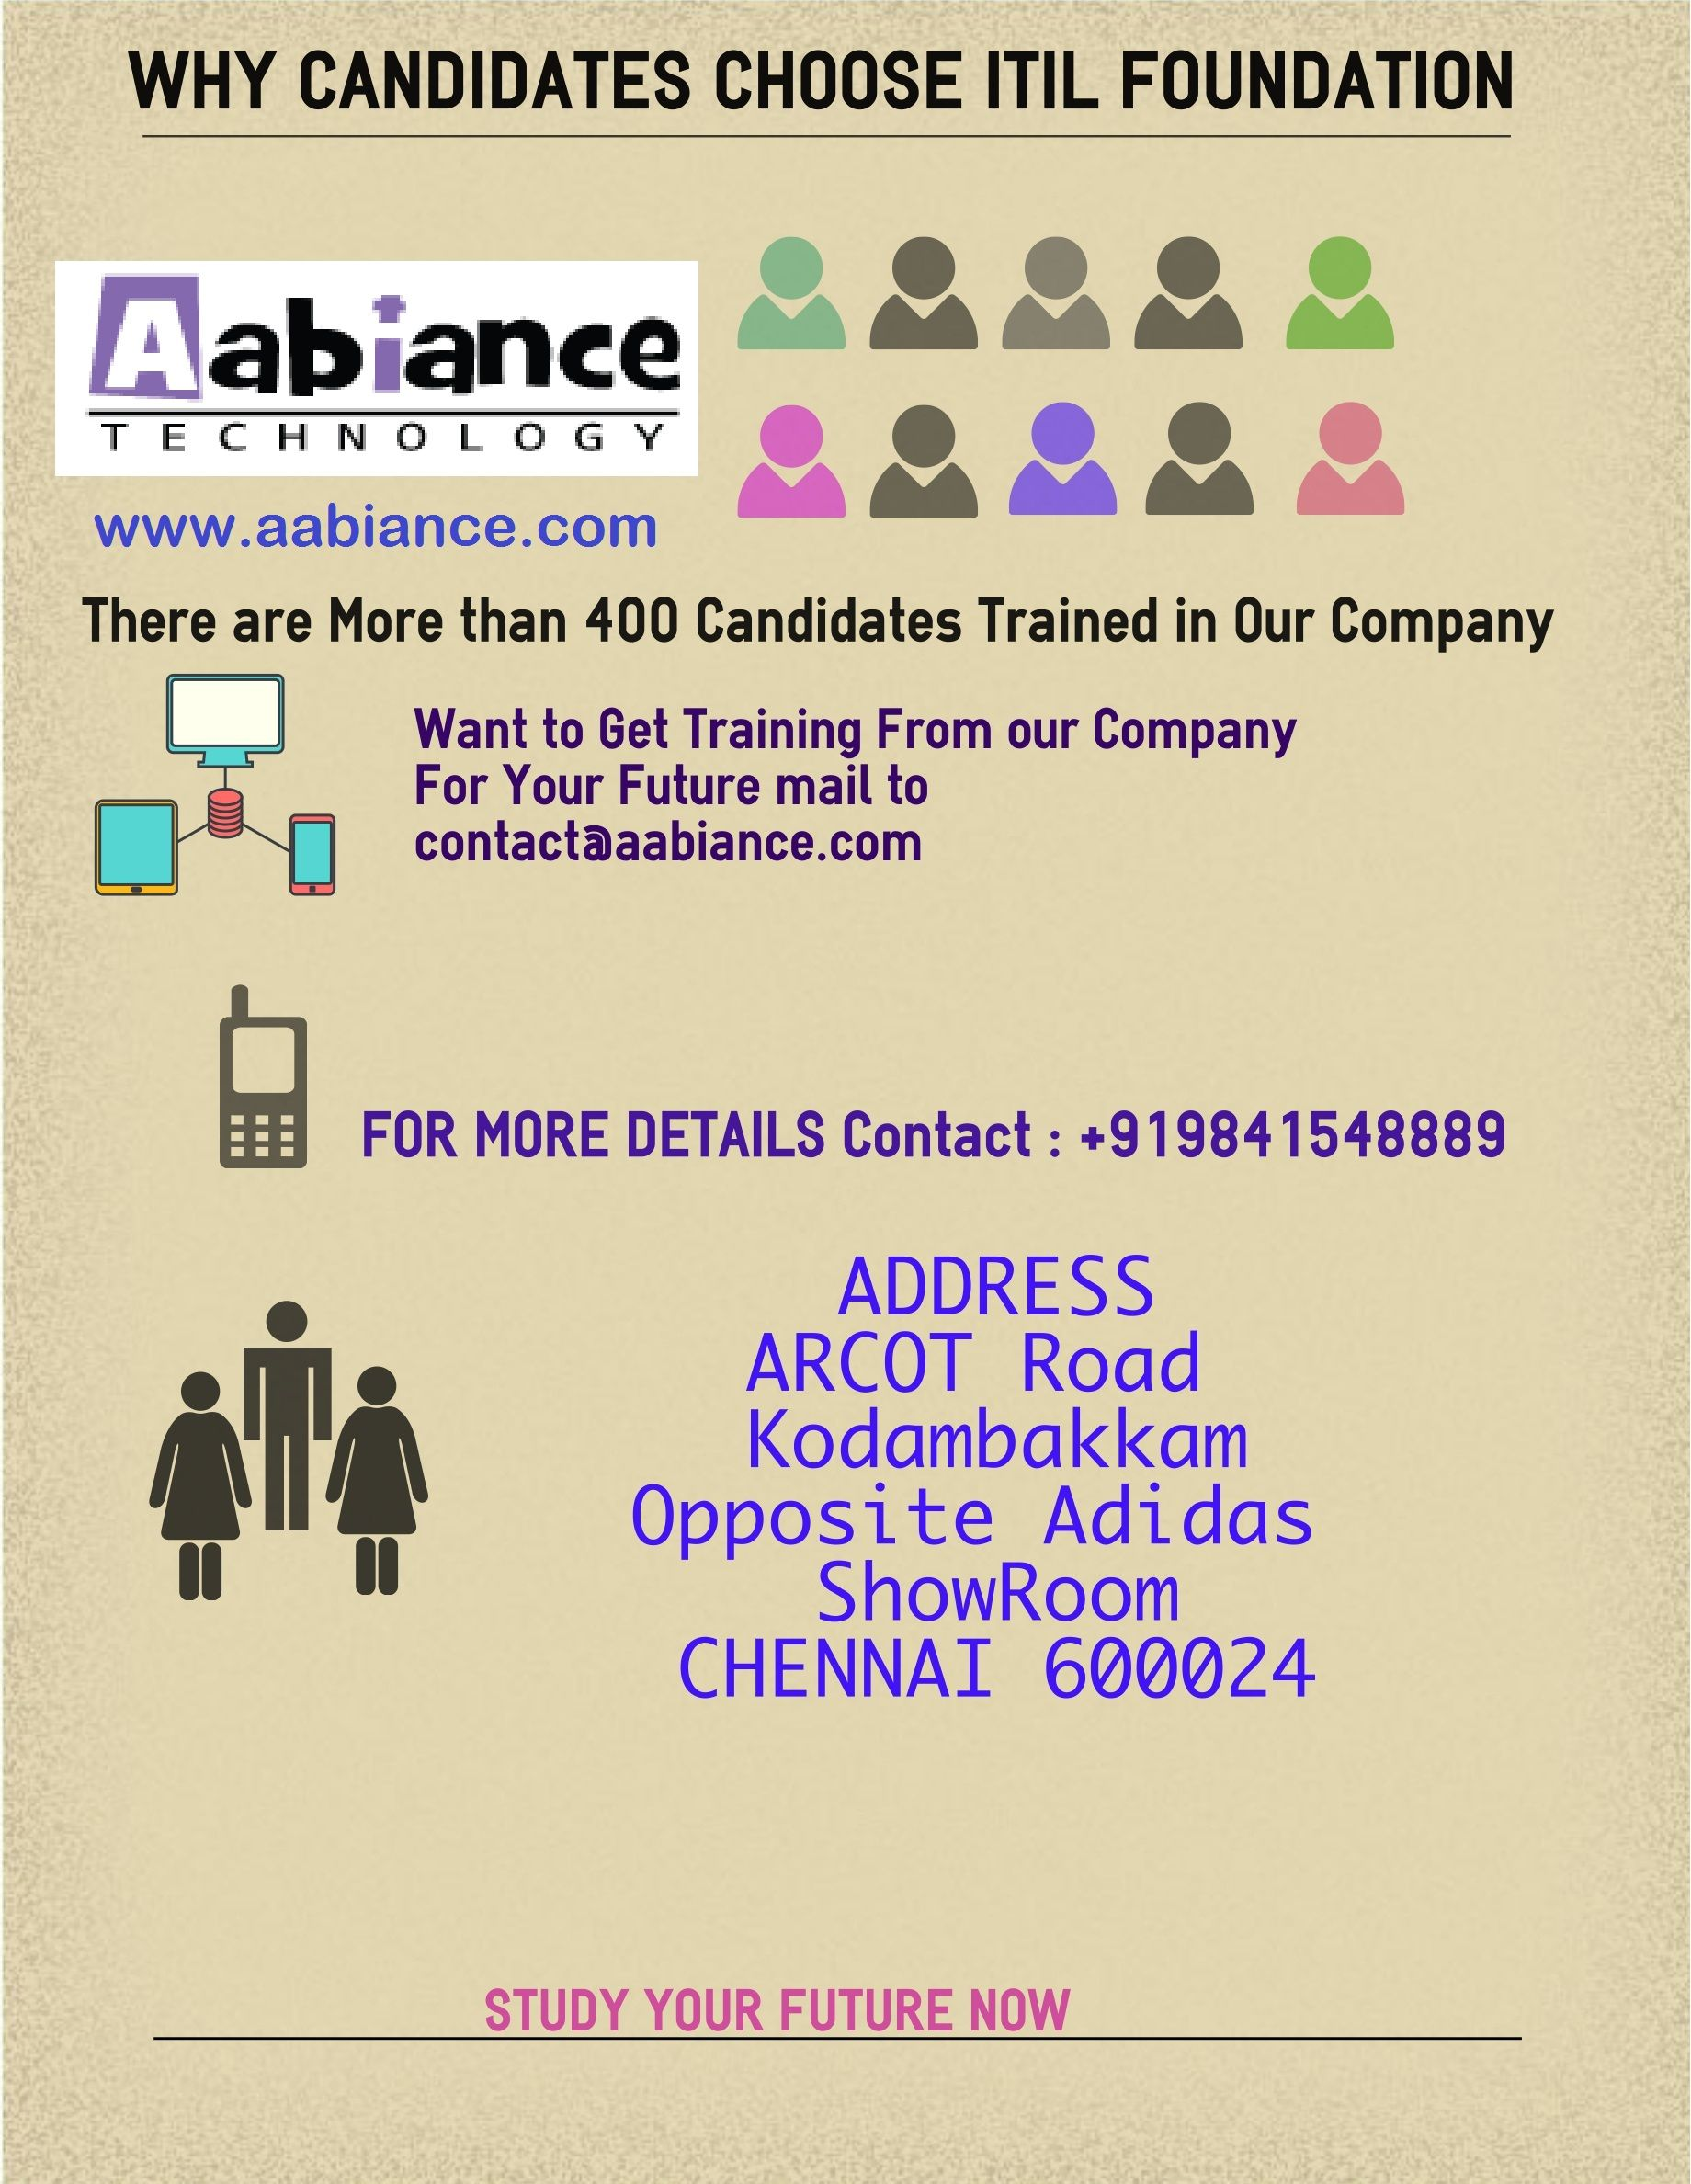 Pin By Aabiance Technology On Itil Foundation Training Pinterest